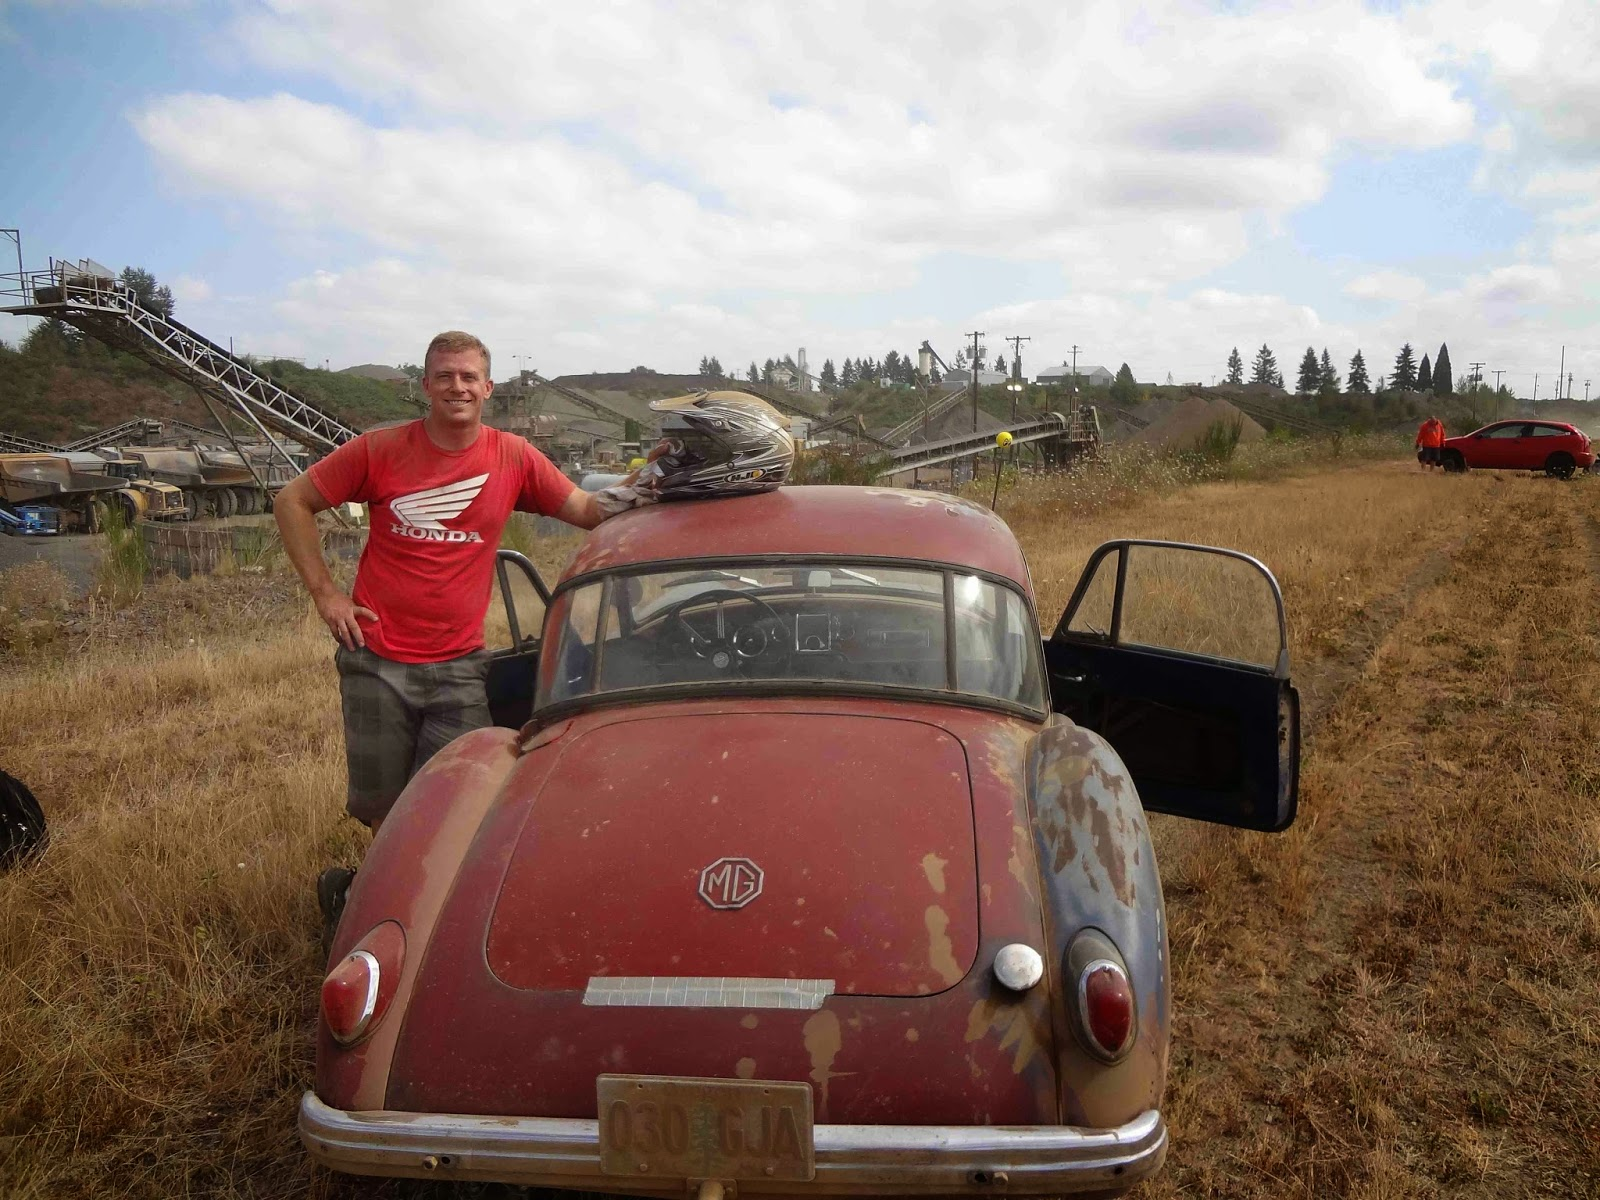 How to Kill Time with Classic Cars - Videos, Blogs, etc | Vintage